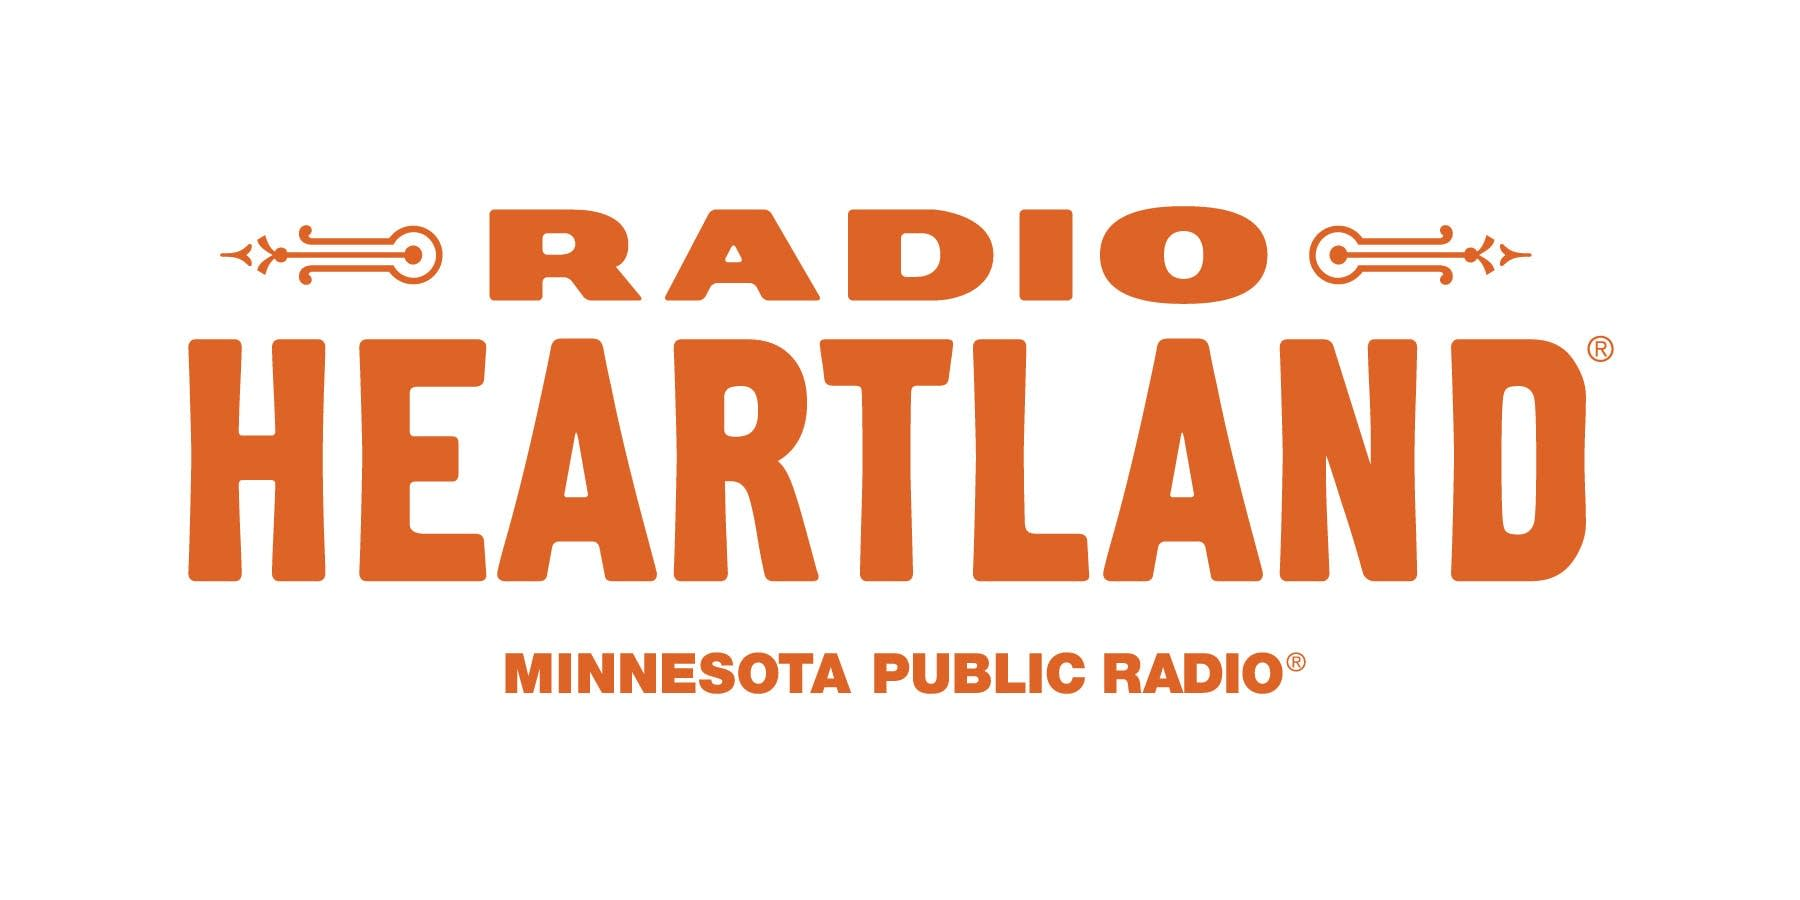 radio heartland, wordmark